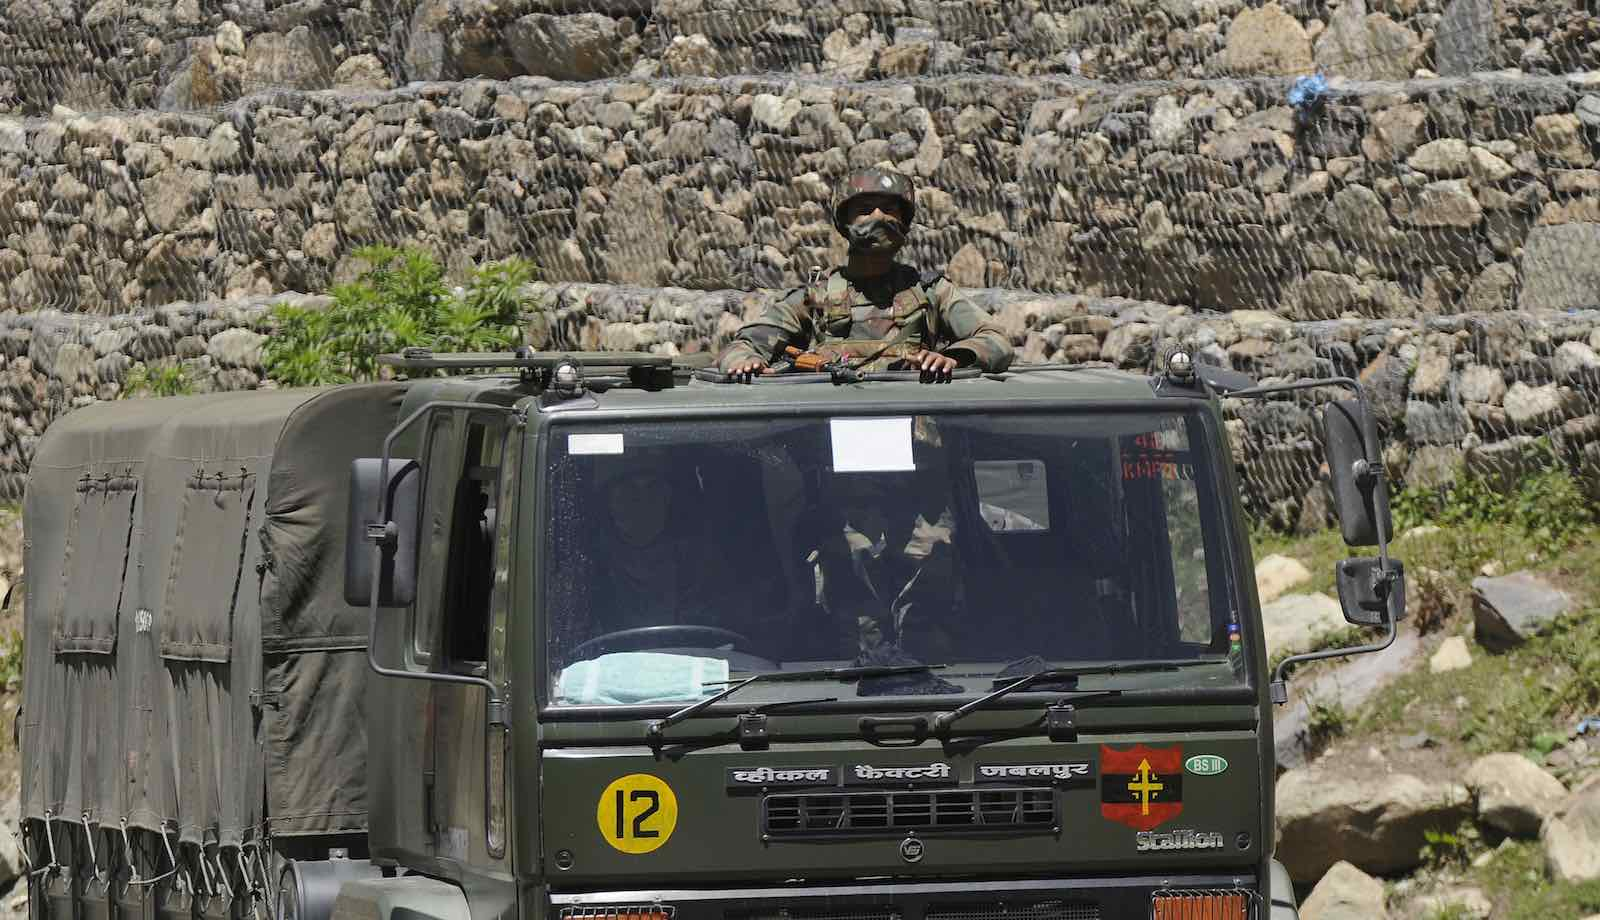 An Indian Army soldier looks out from a truck in a convoy to Ladakh, 22 June  2020 in Ganderbal, India (Waseem Andrabi/Hindustan Times via Getty Images)